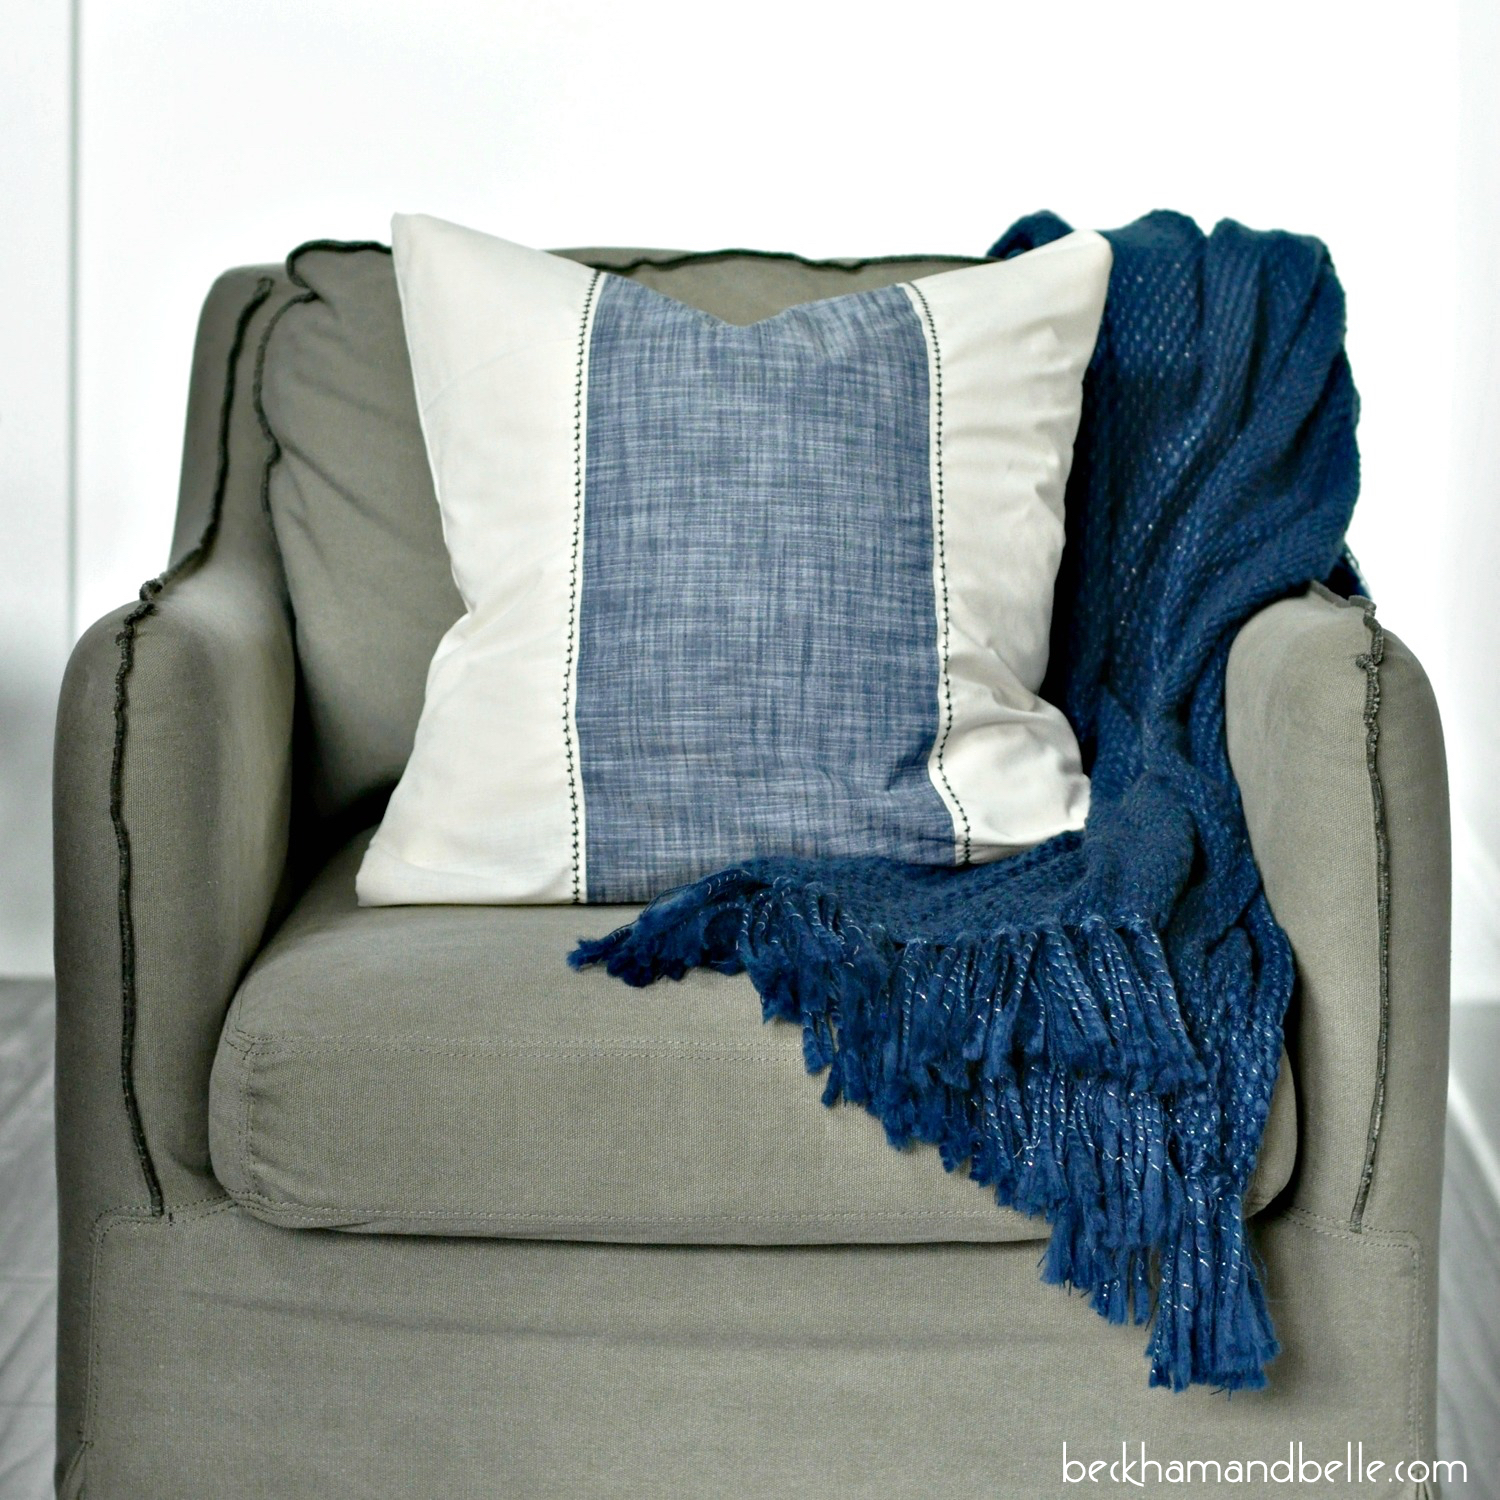 Throw Pillow Uses : Serena & Lily Inspired Throw Pillow - Beckham + Belle